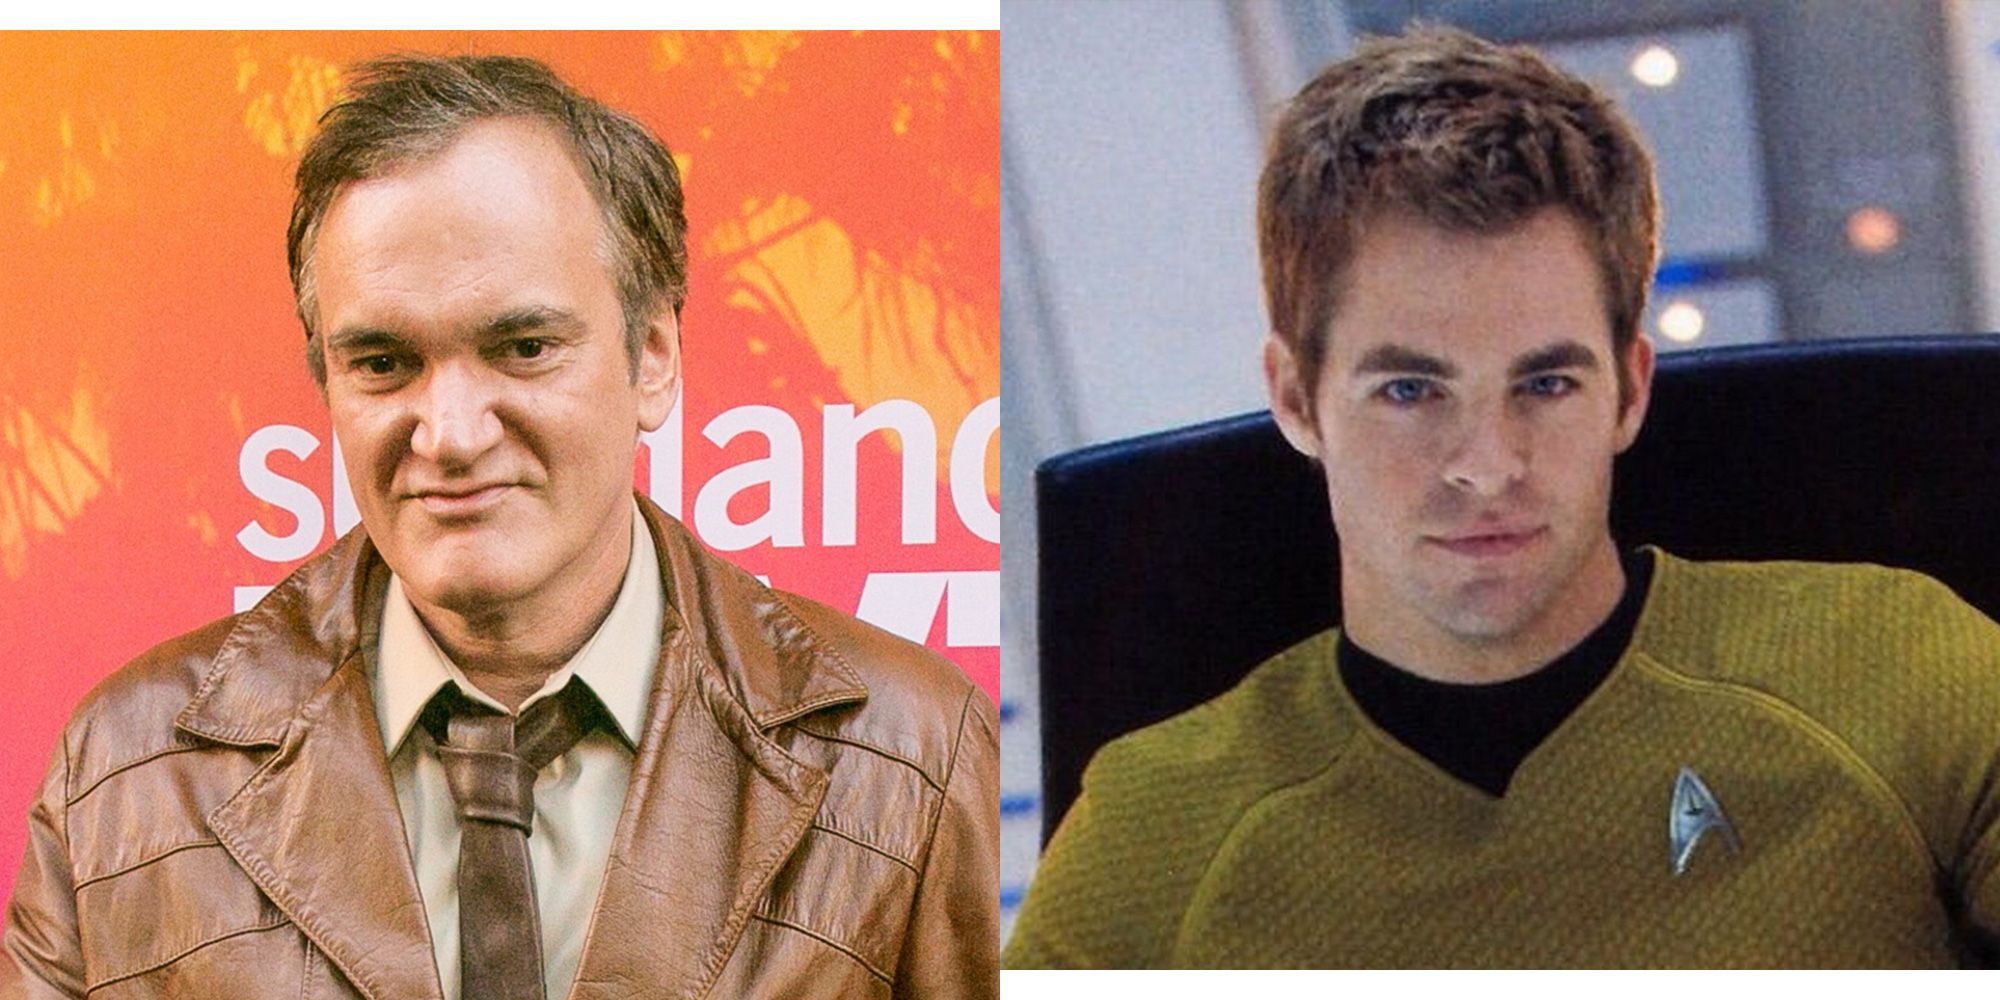 Everything We Know About Quentin Tarantino and J.J. Abrams' Star Trek Movie So Far